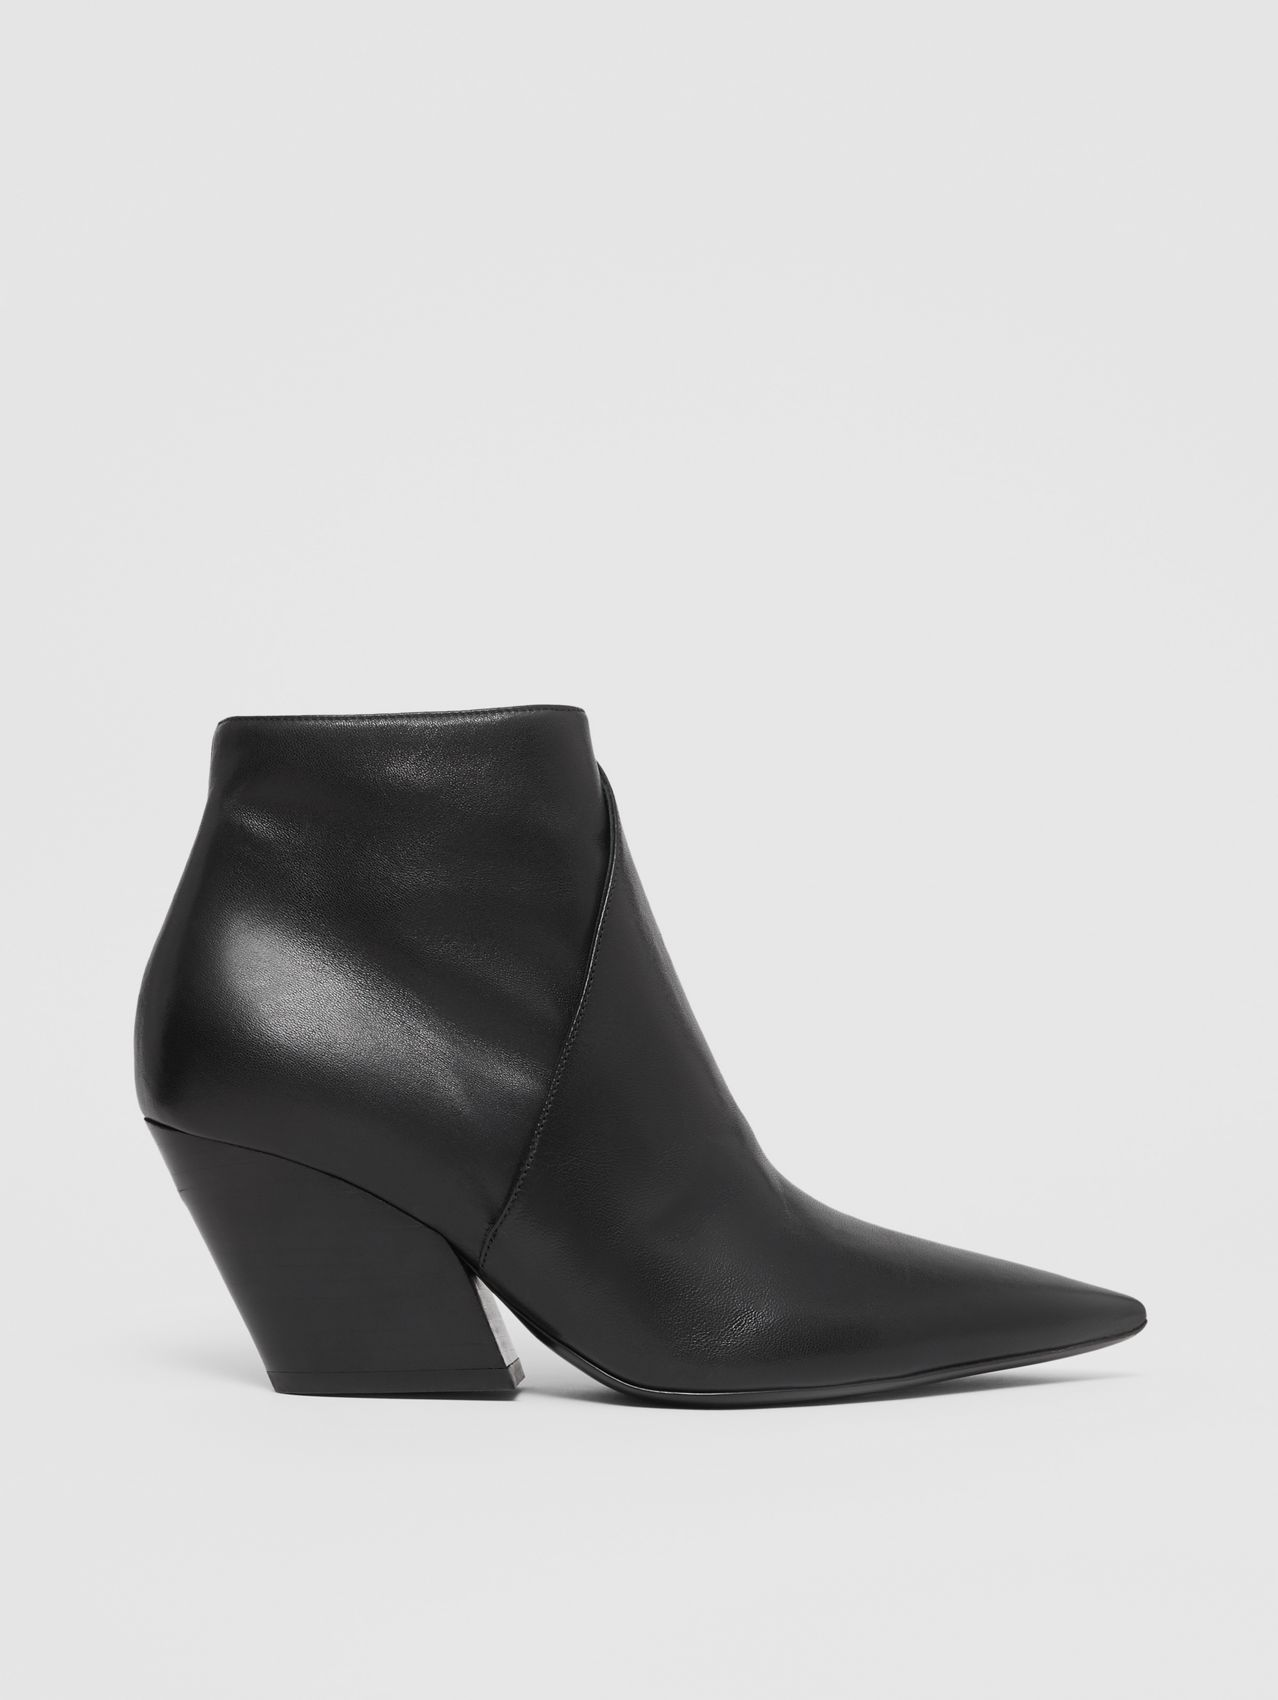 Bottines en cuir in Noir